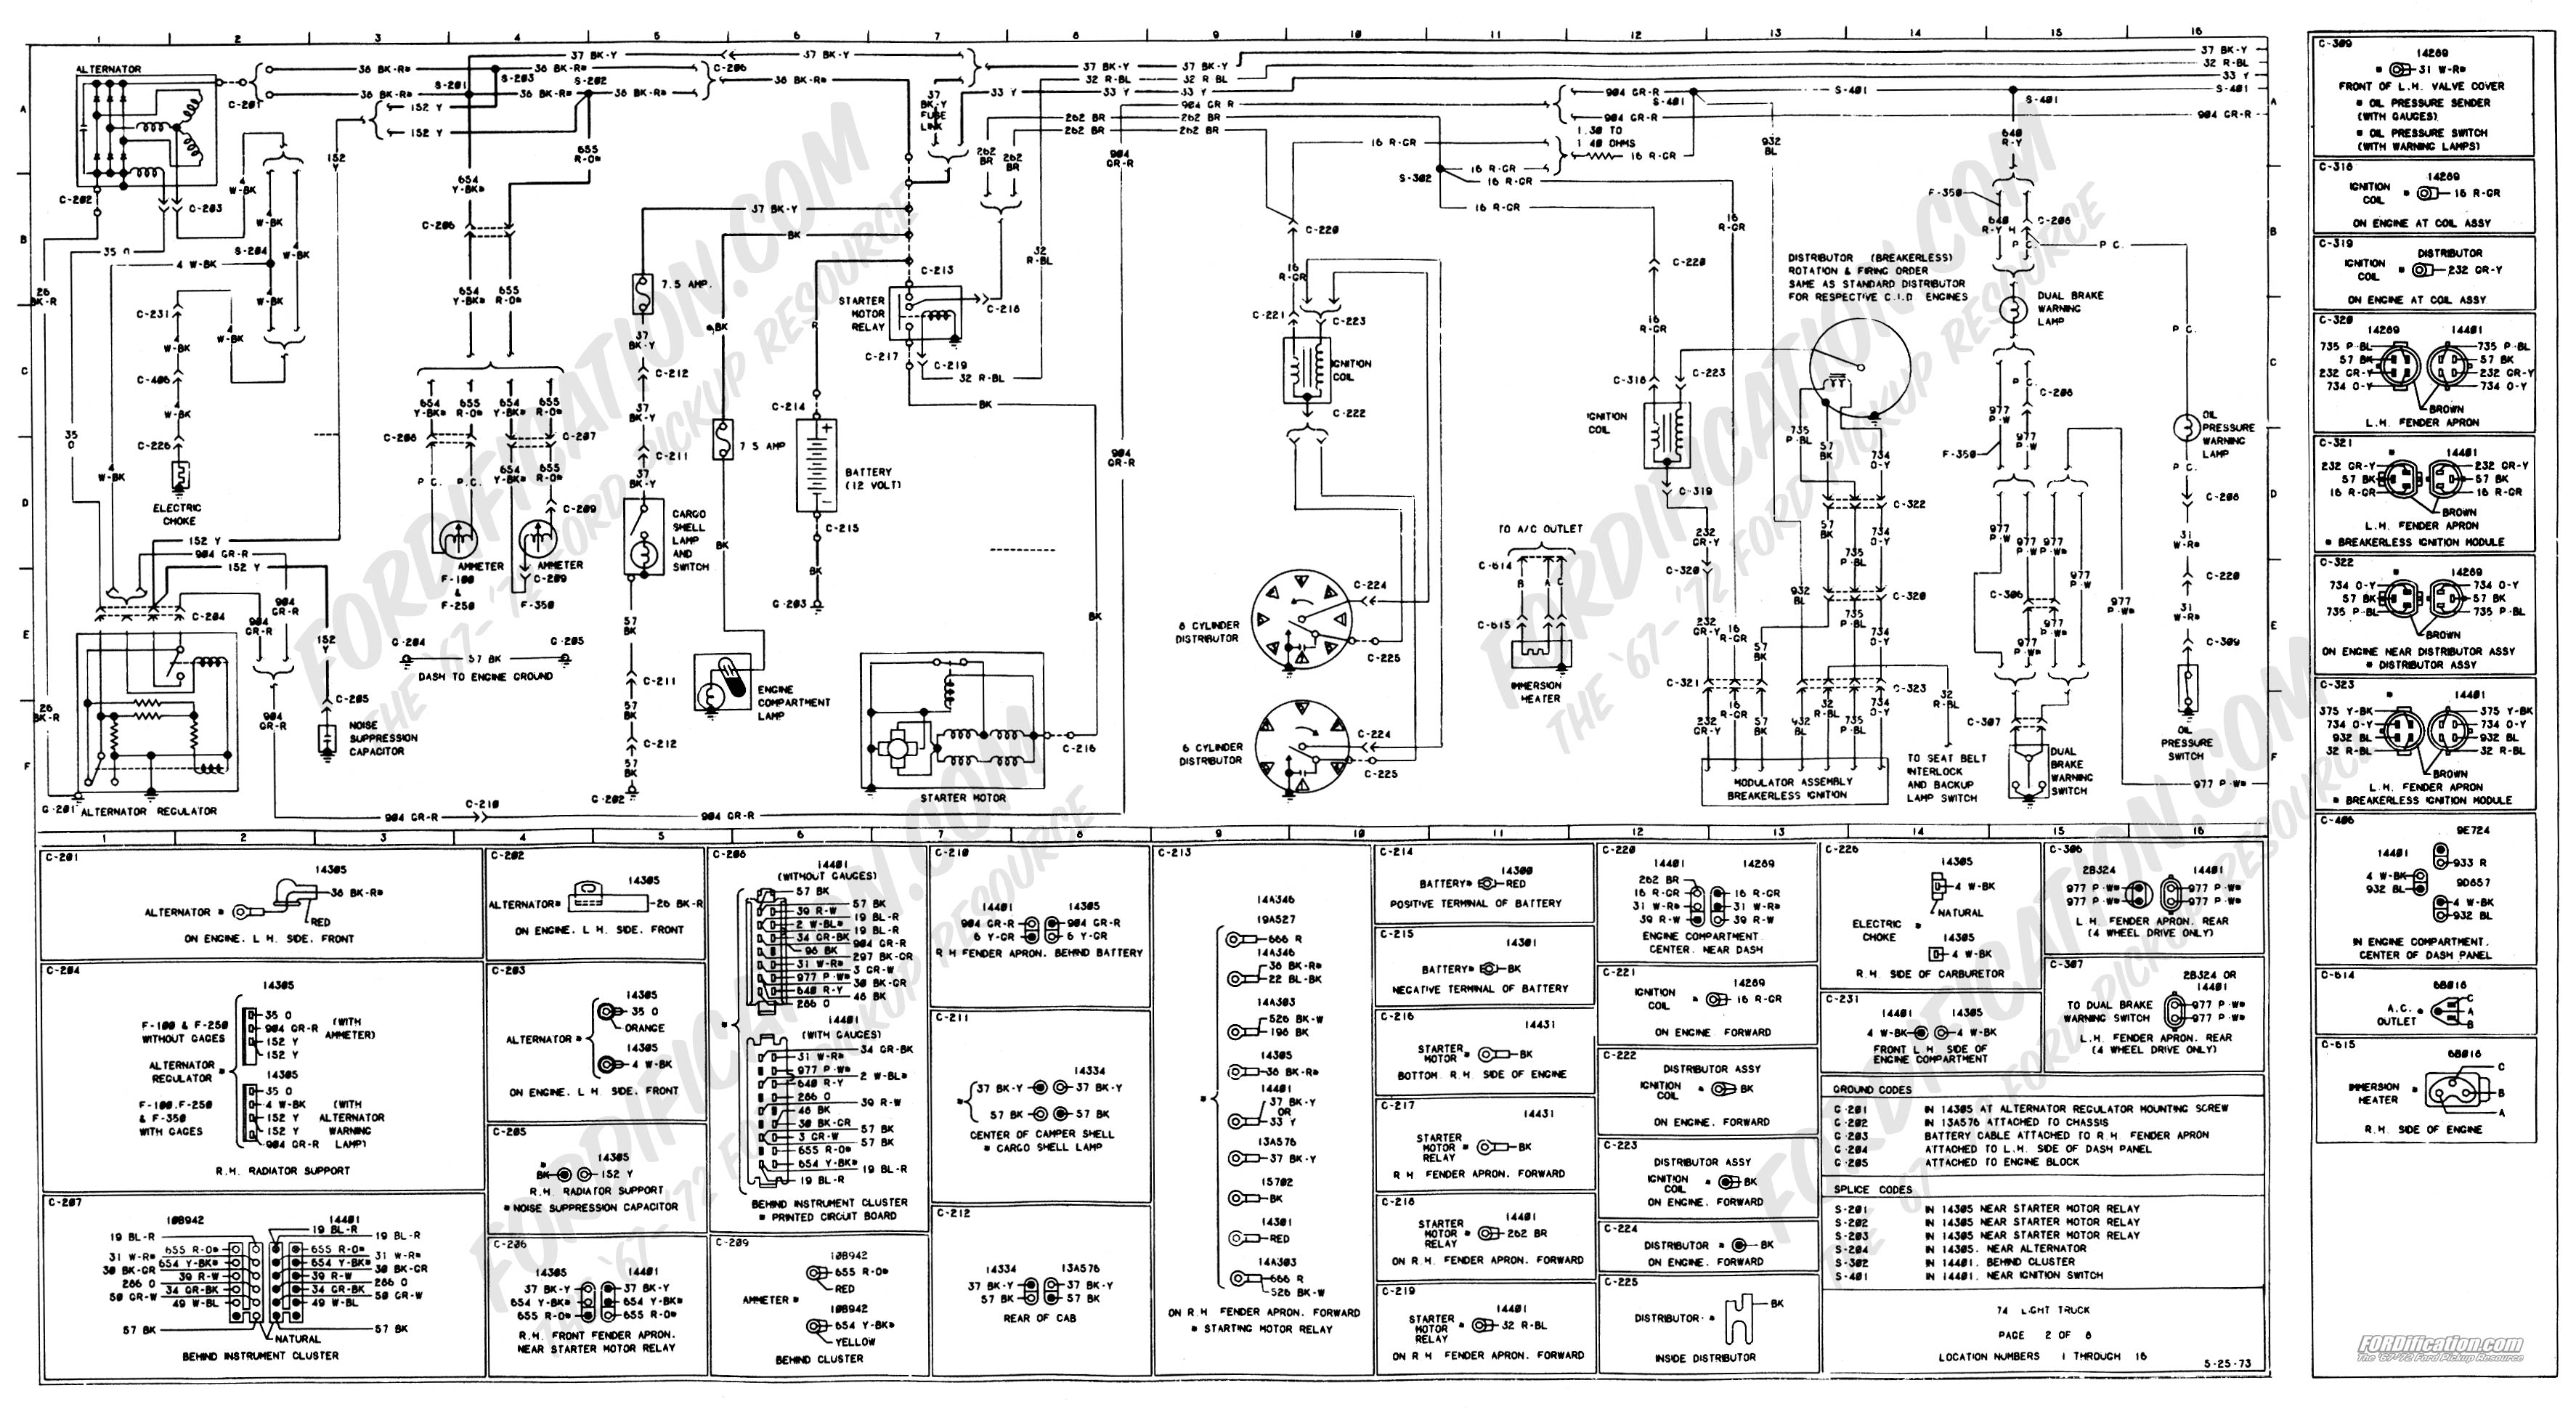 Troubleshooting 2003 Ford F 250 Truck Wiring Diagram Library F250 Page 02 1973 1979 Diagrams